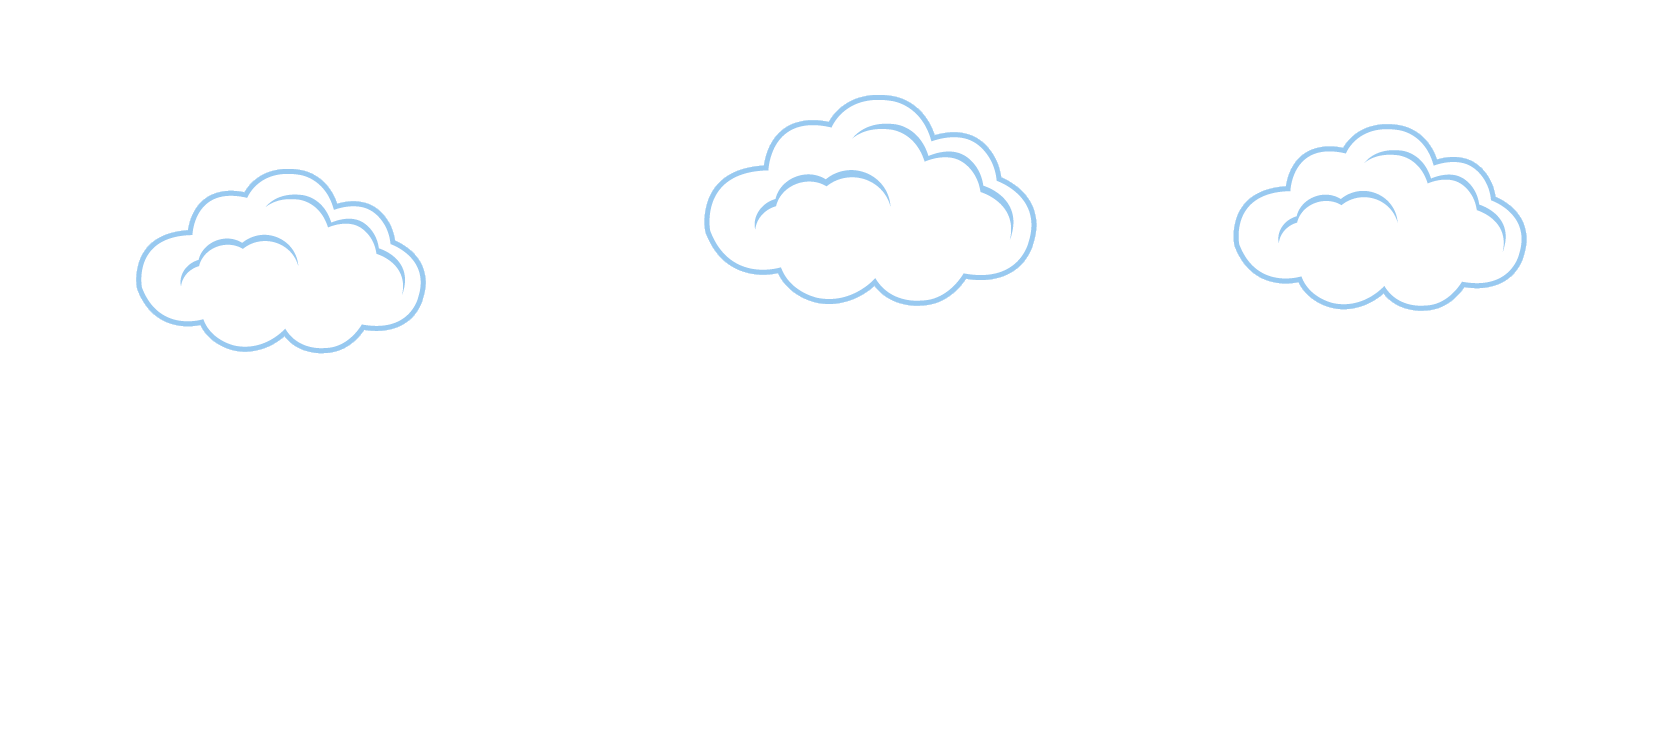 Cloudy Skies Background